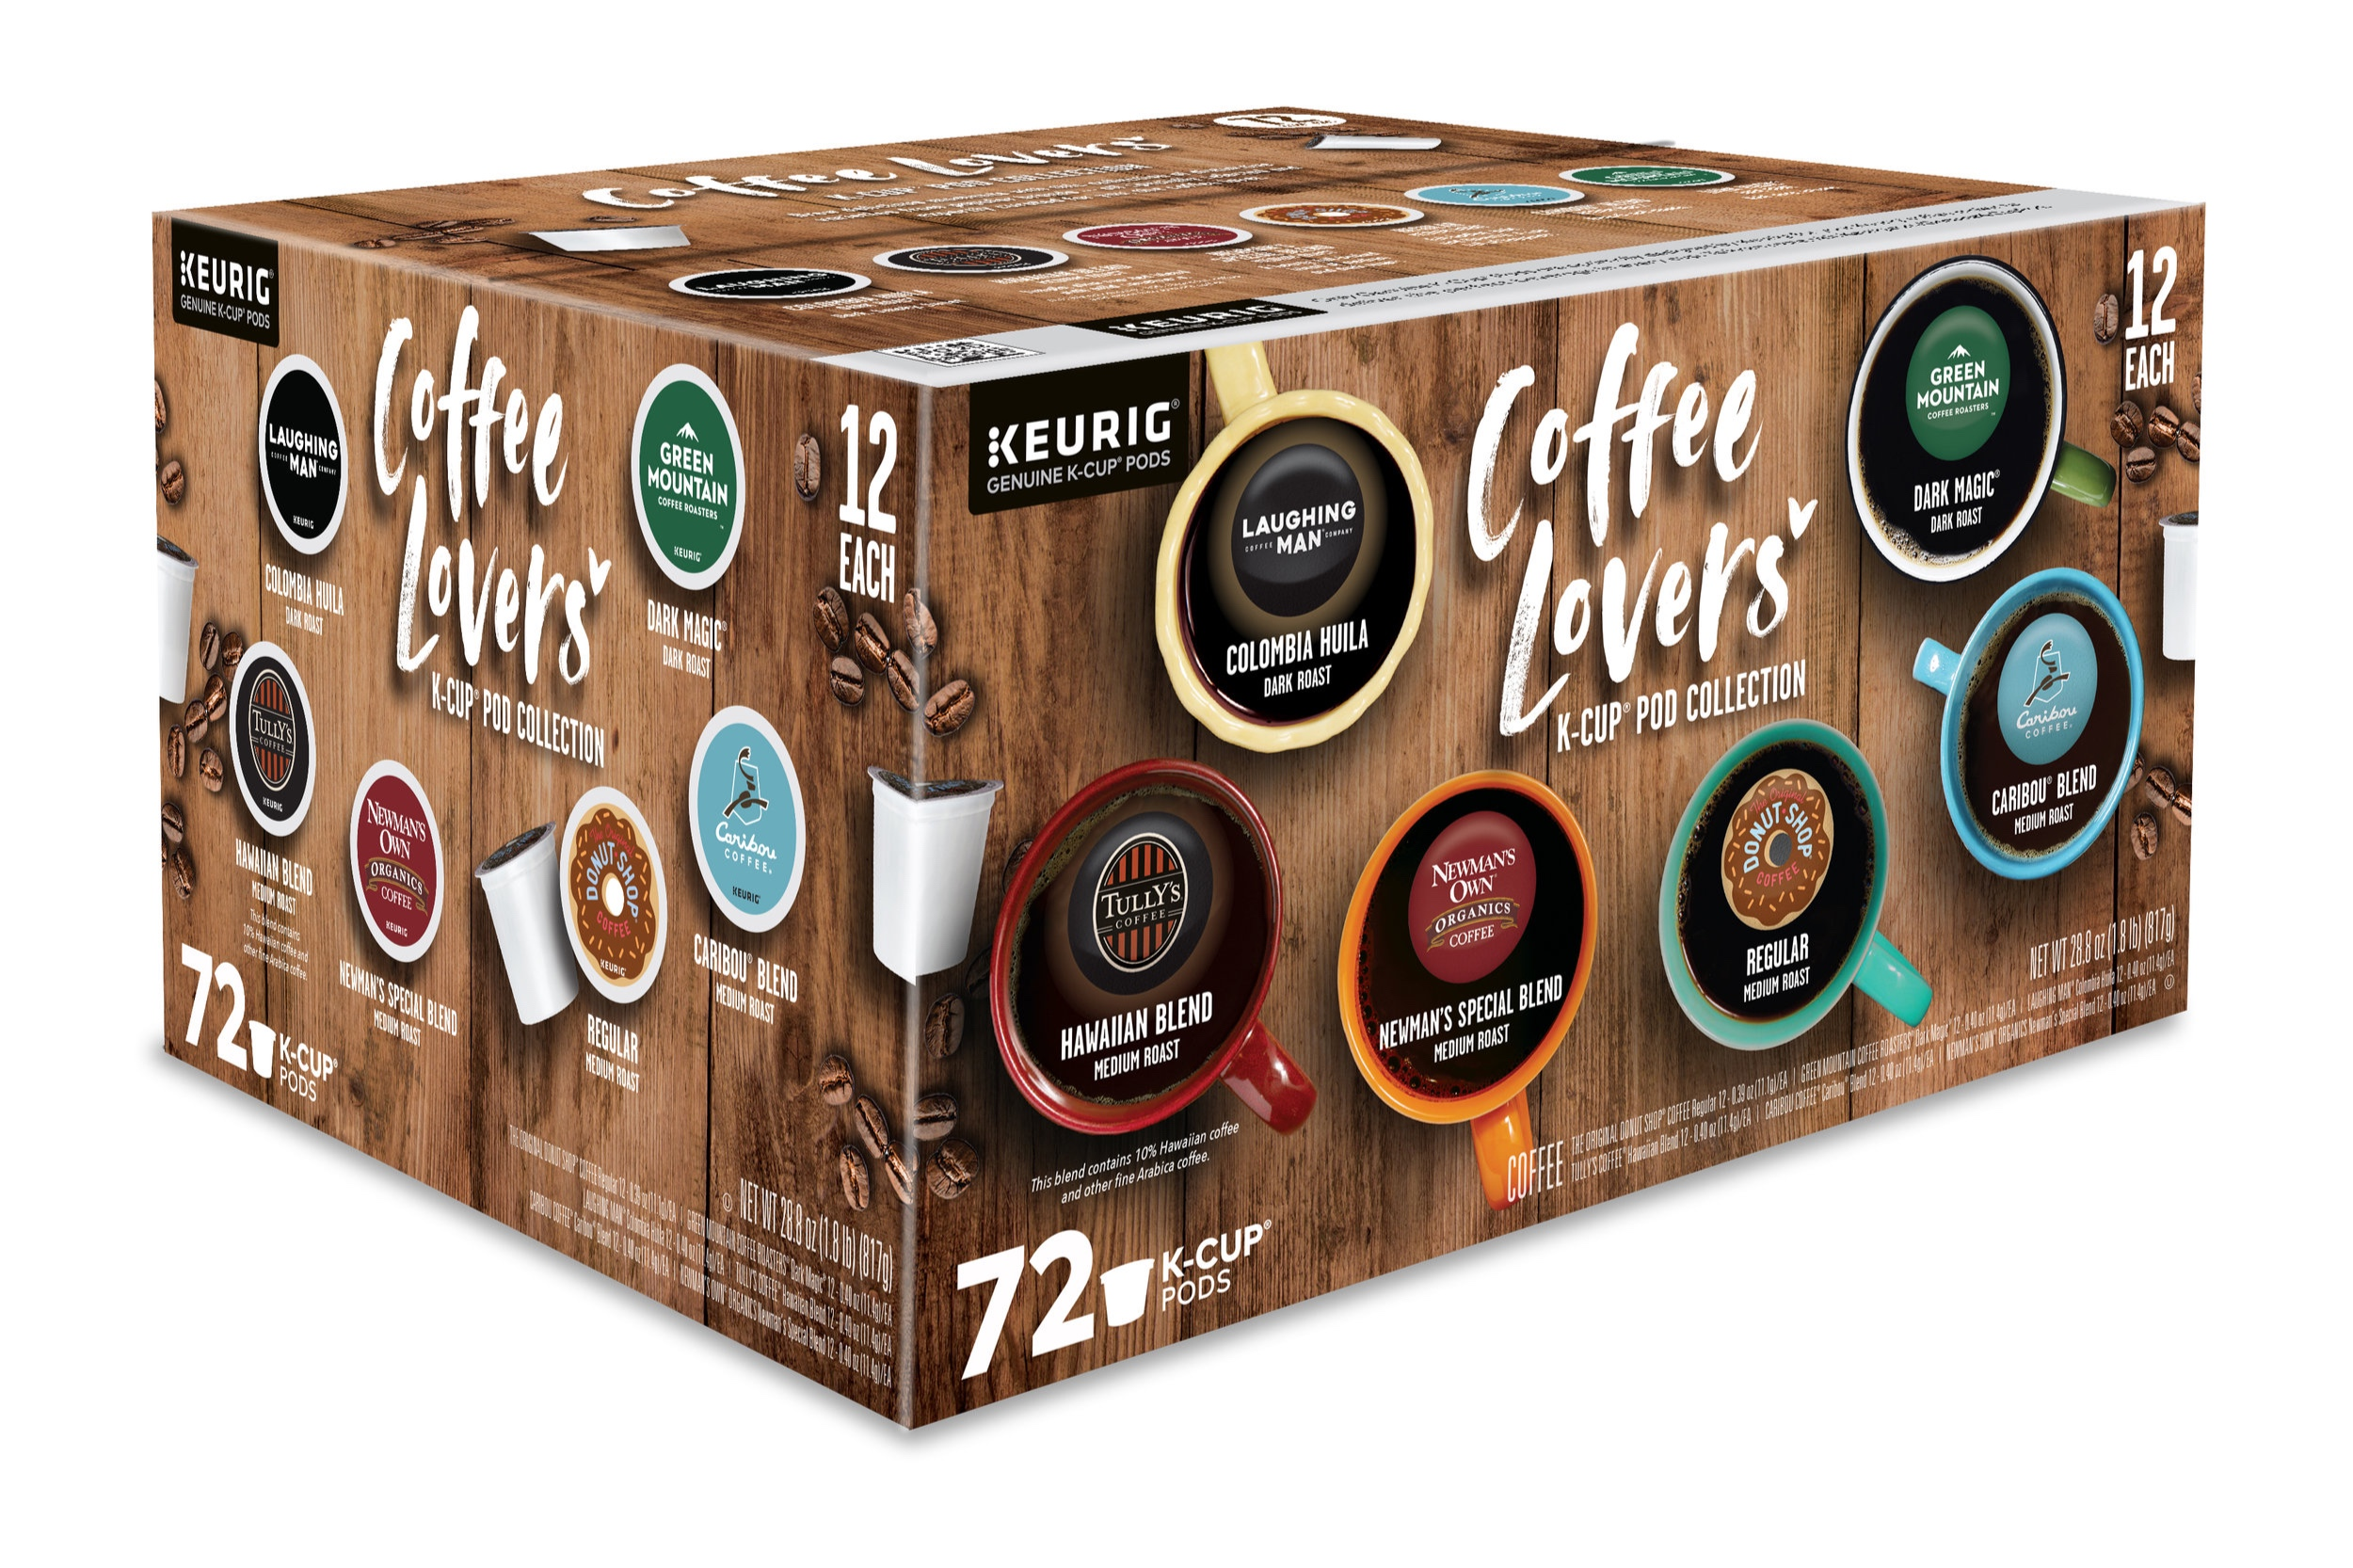 COSTCO COFFEE LOVERS' COLLECTION